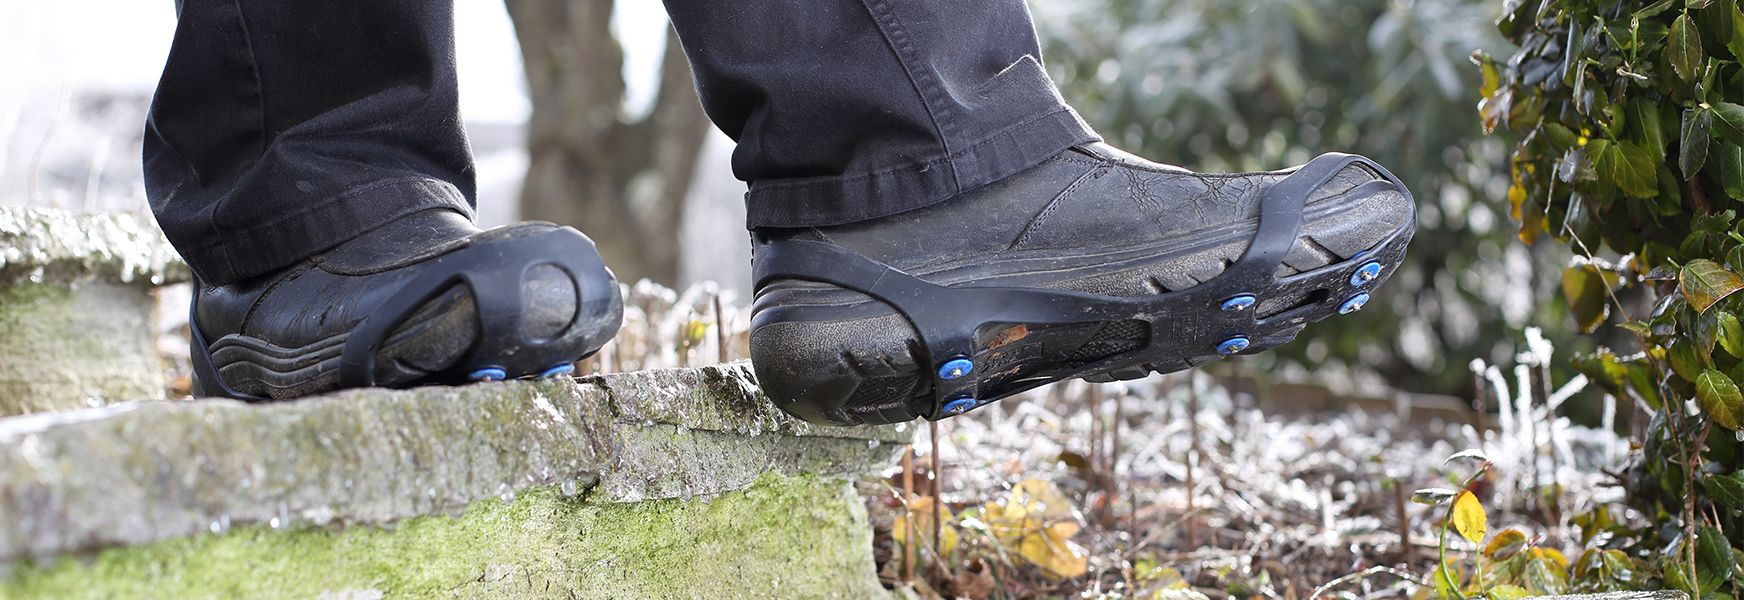 Boots equipped with traction enhancers.